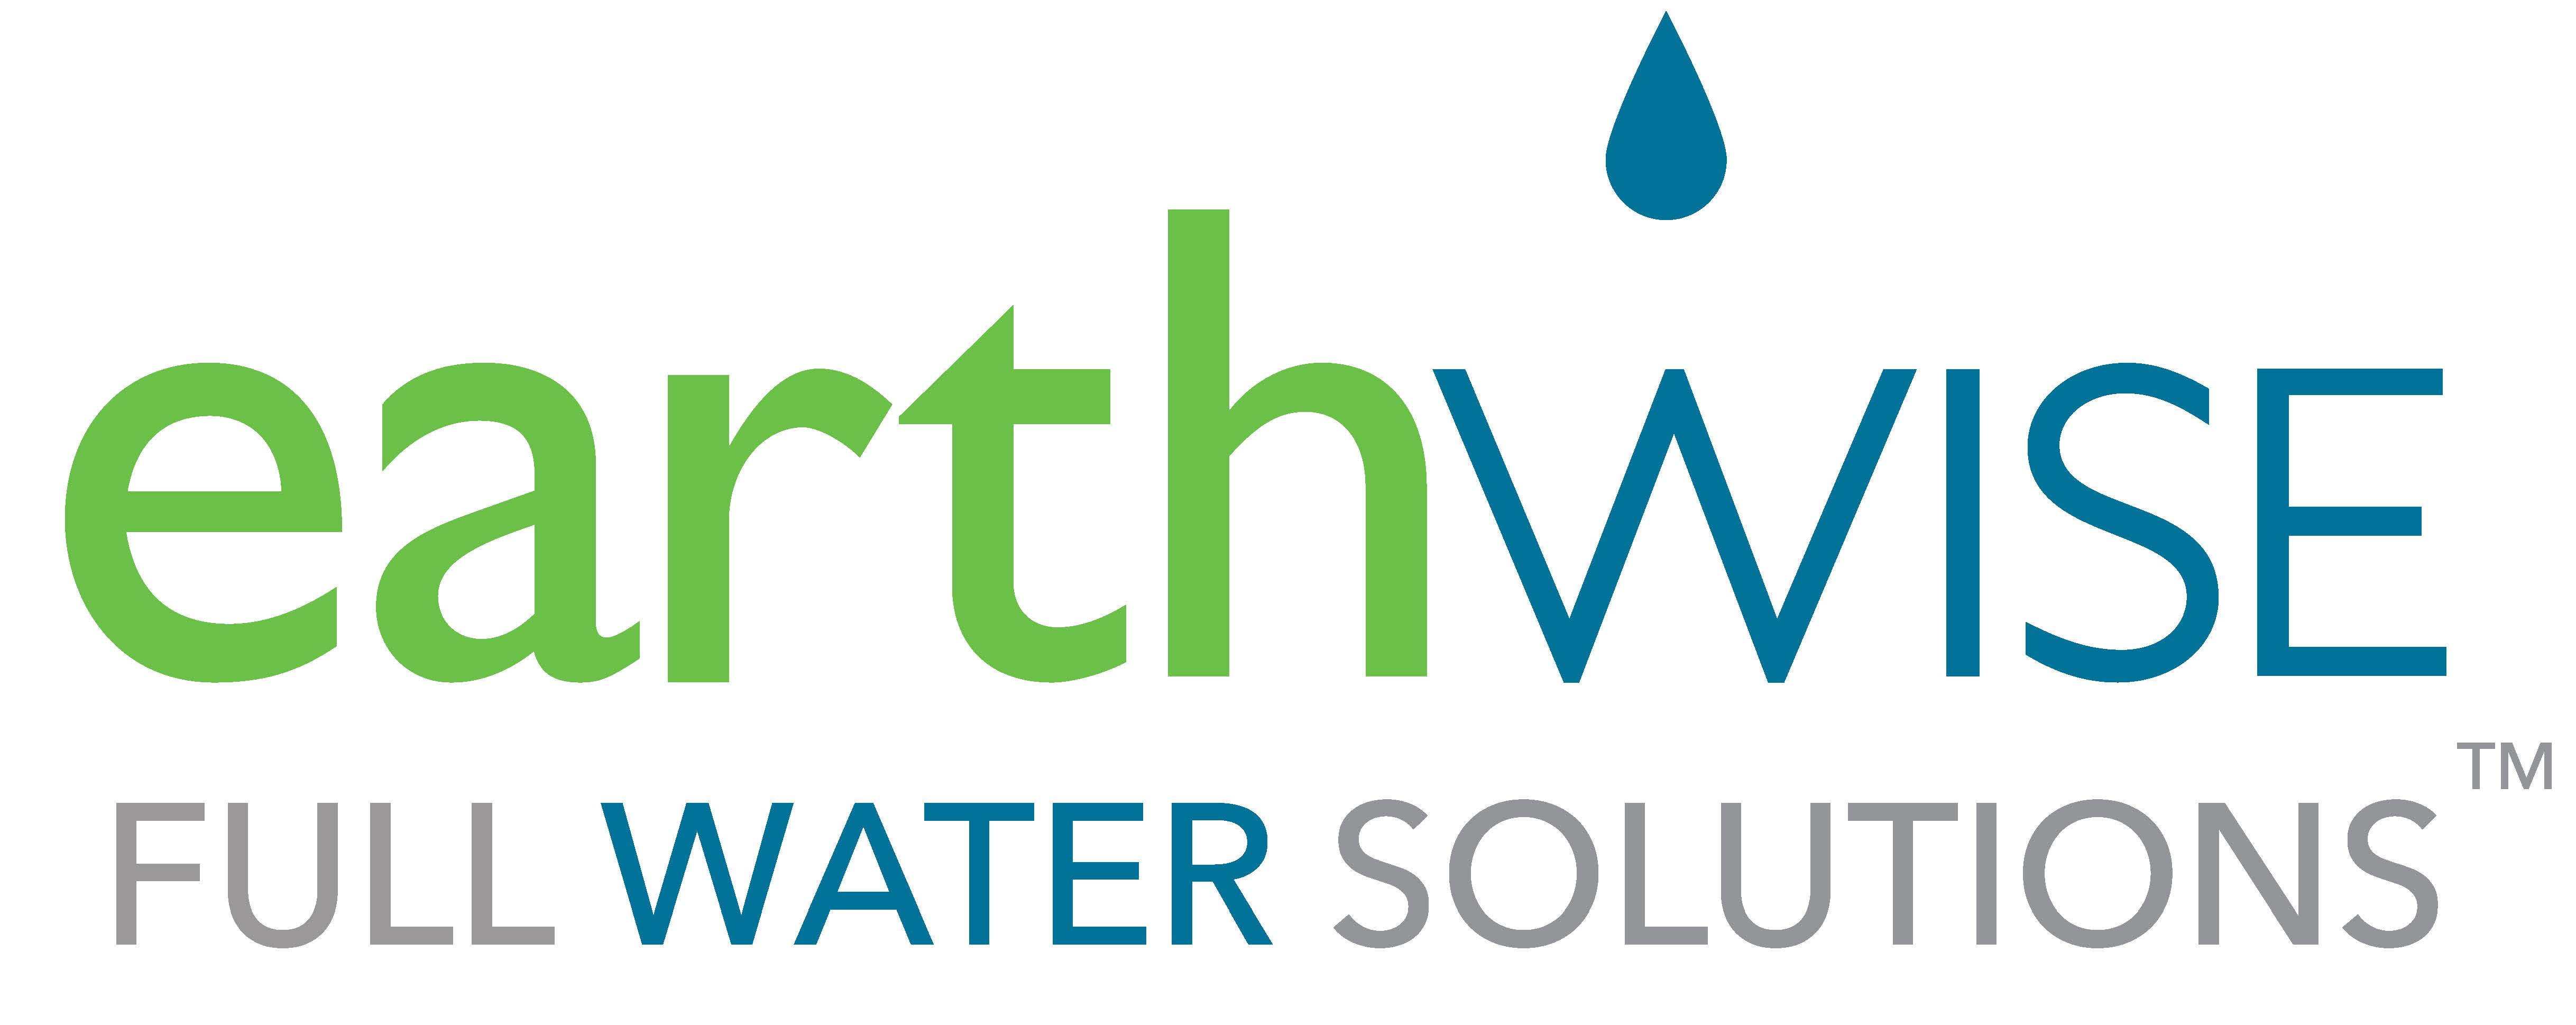 Earthwise Full Water Solutions